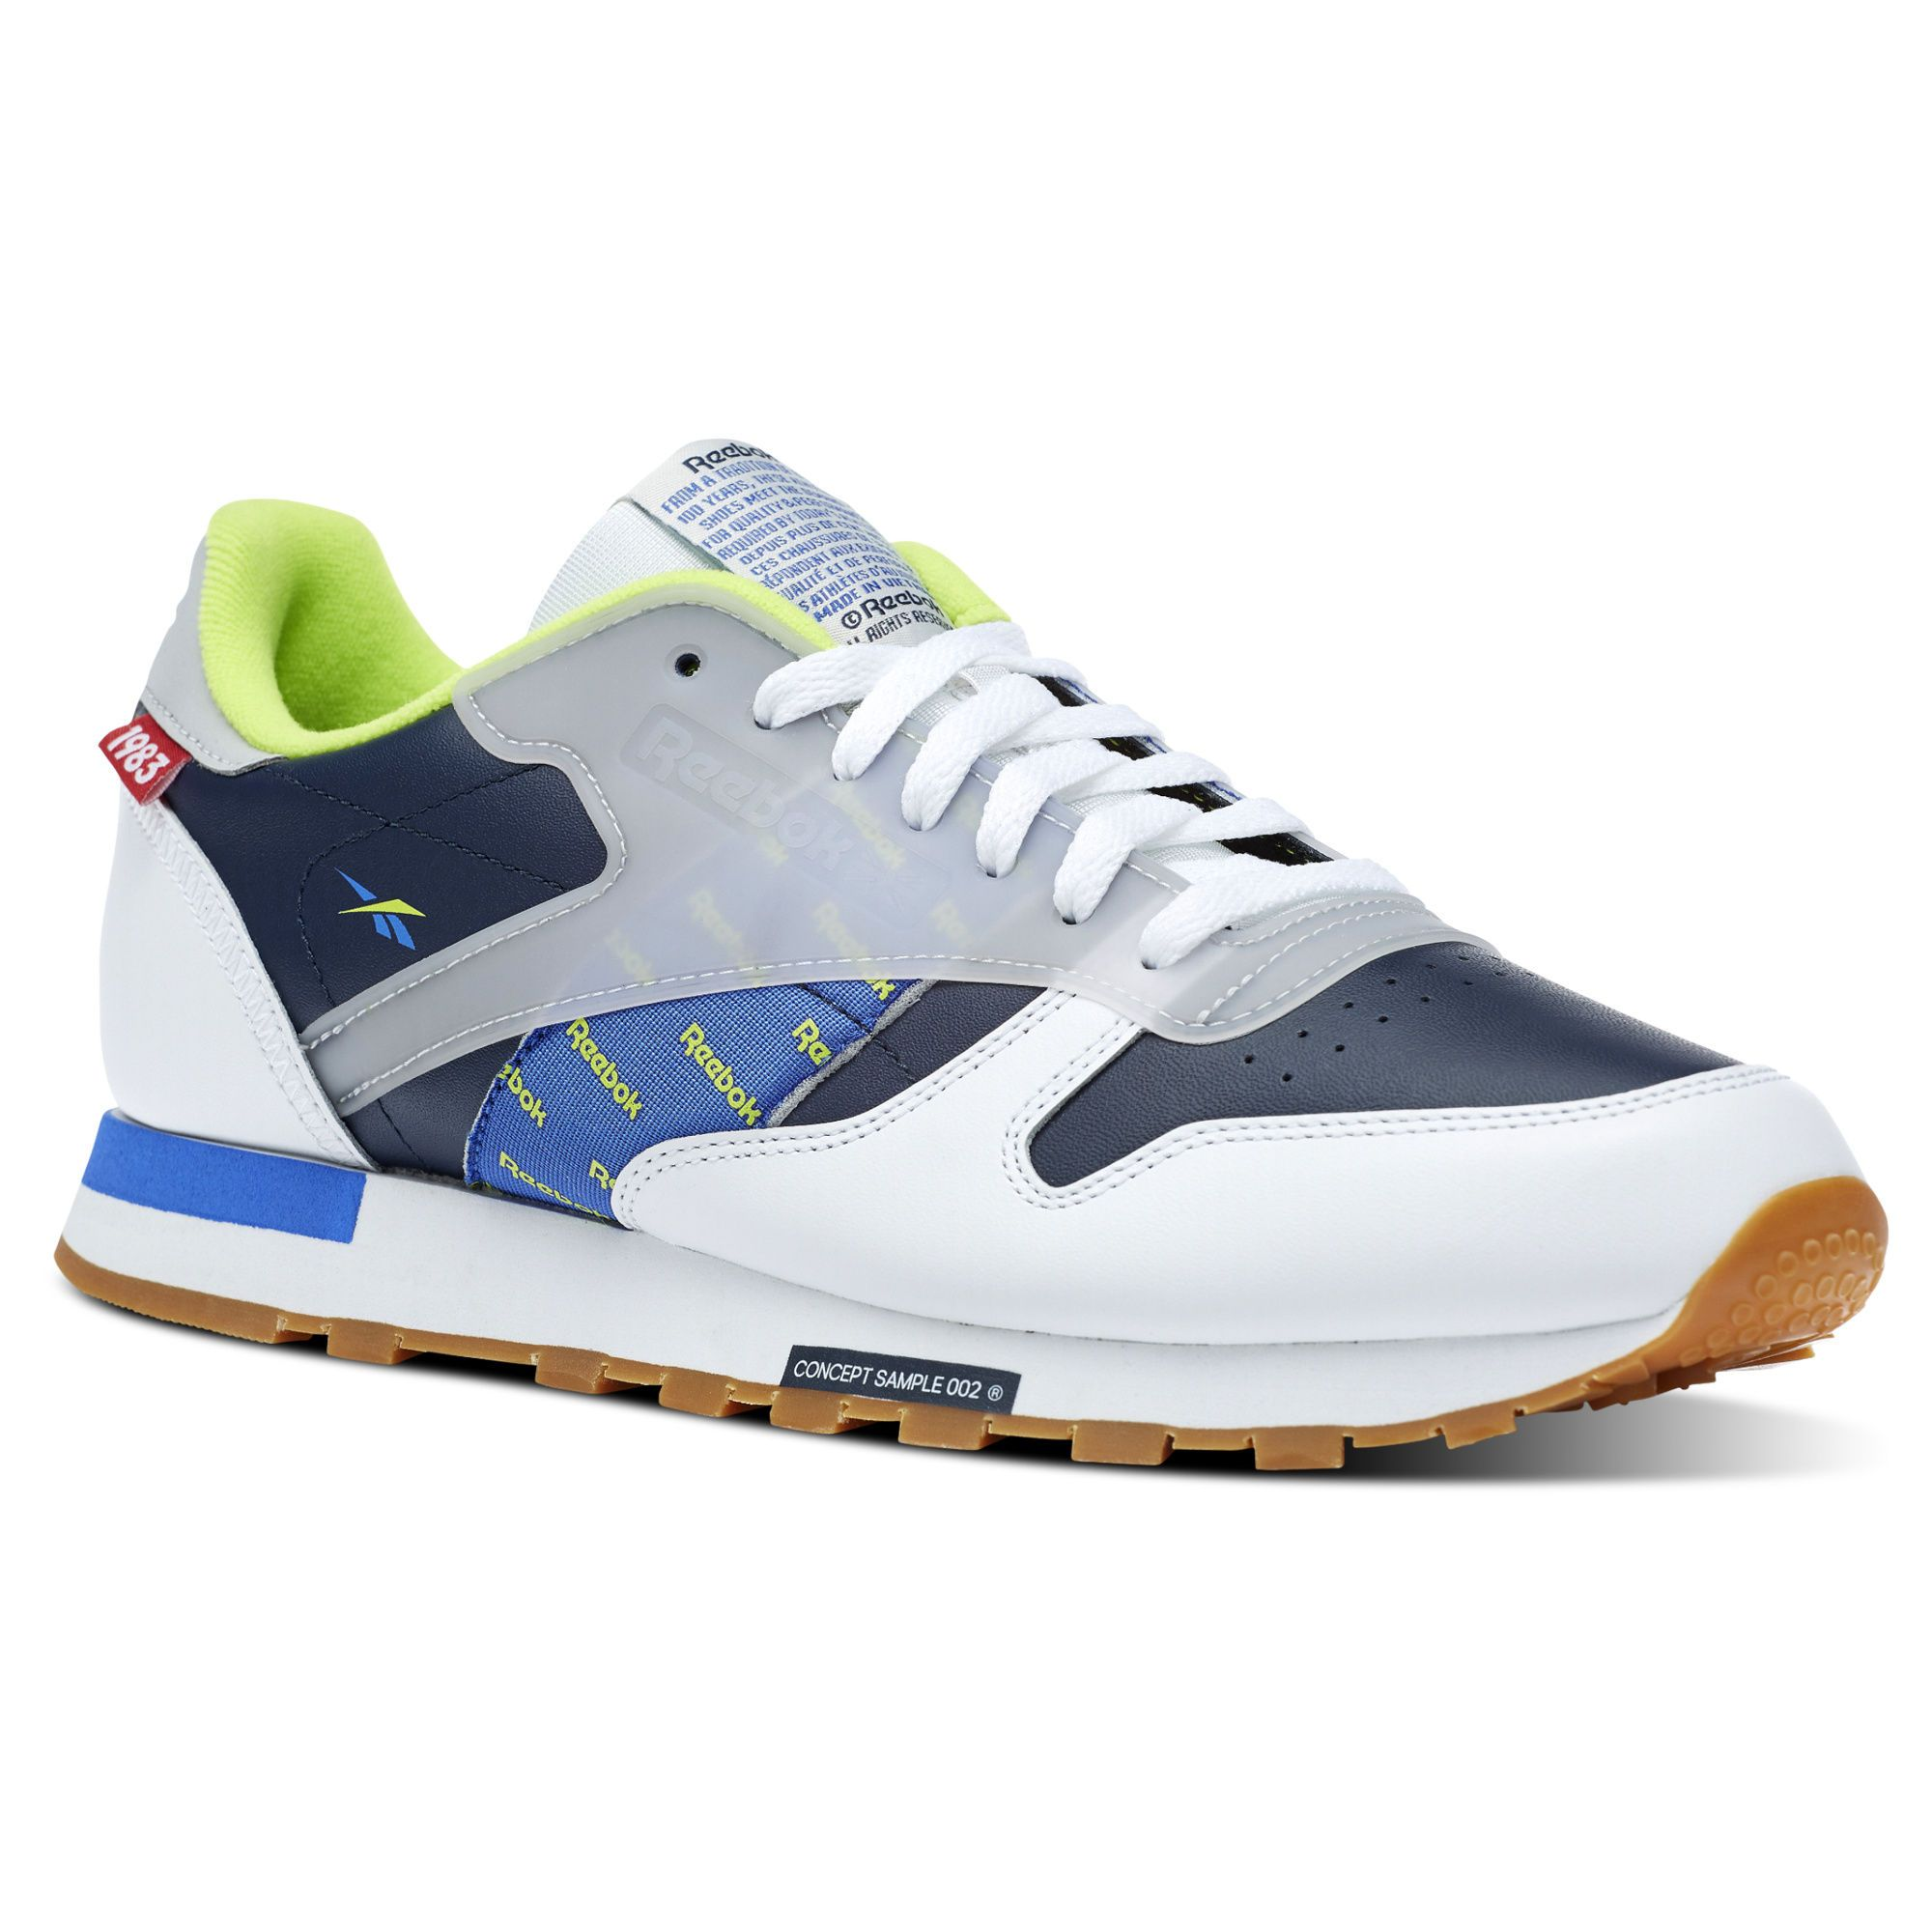 Shop for Classic Leather Altered - Multicolor at reebok.com. See all the  styles and colors of Classic Leather Altered - Multicolor at the official  Reebok US ... 02061adc4